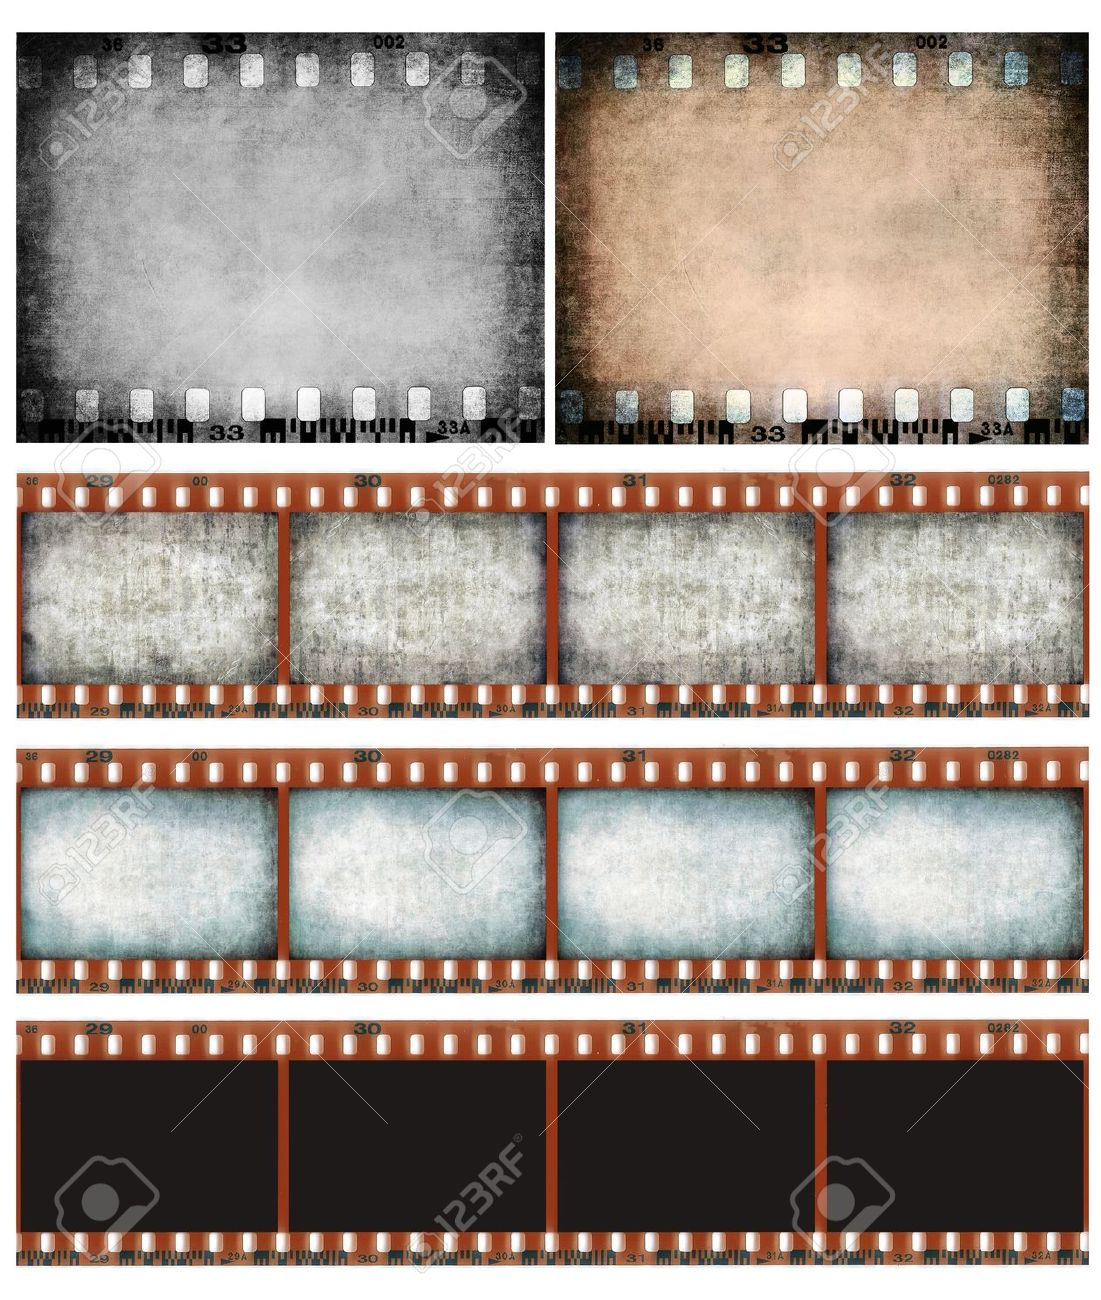 Grunge color filmstrip texture, scratched photo film frame background Stock Photo - 12185059